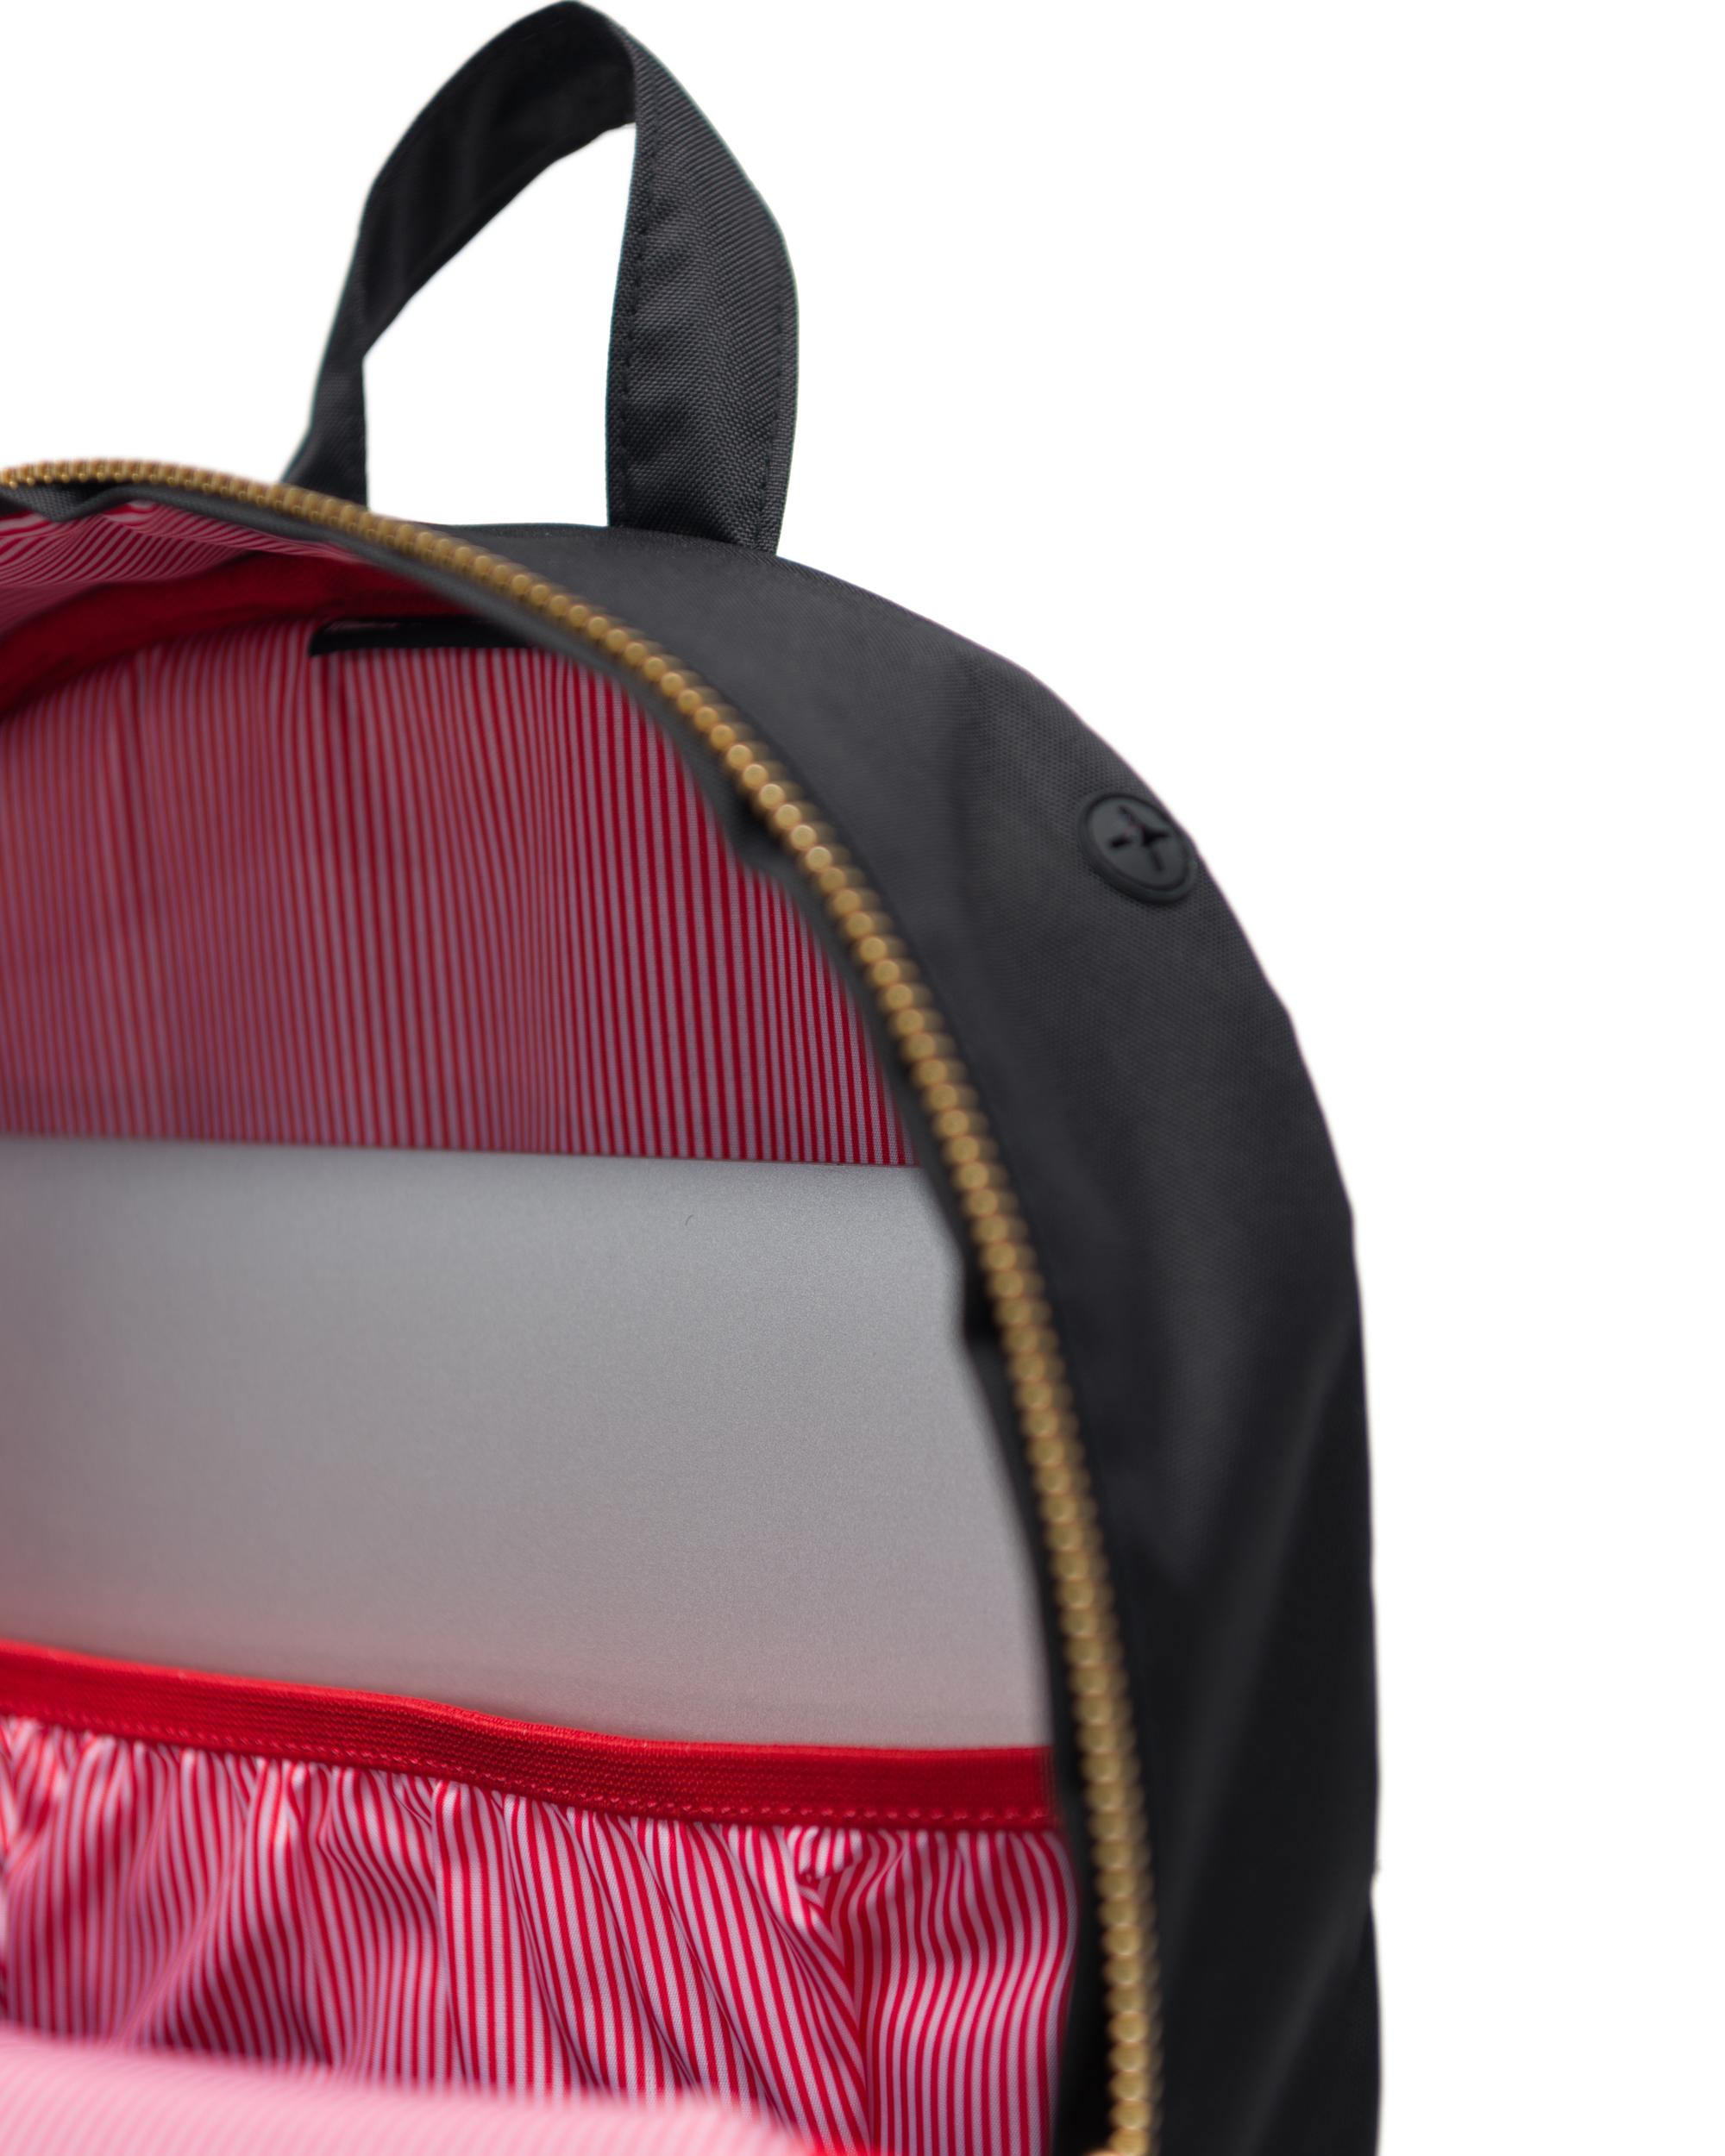 af680cef799 The Settlement Mid-Volume Light backpack is an iconic style that offers a  relaxed structure, functional details and contemporary finishes.